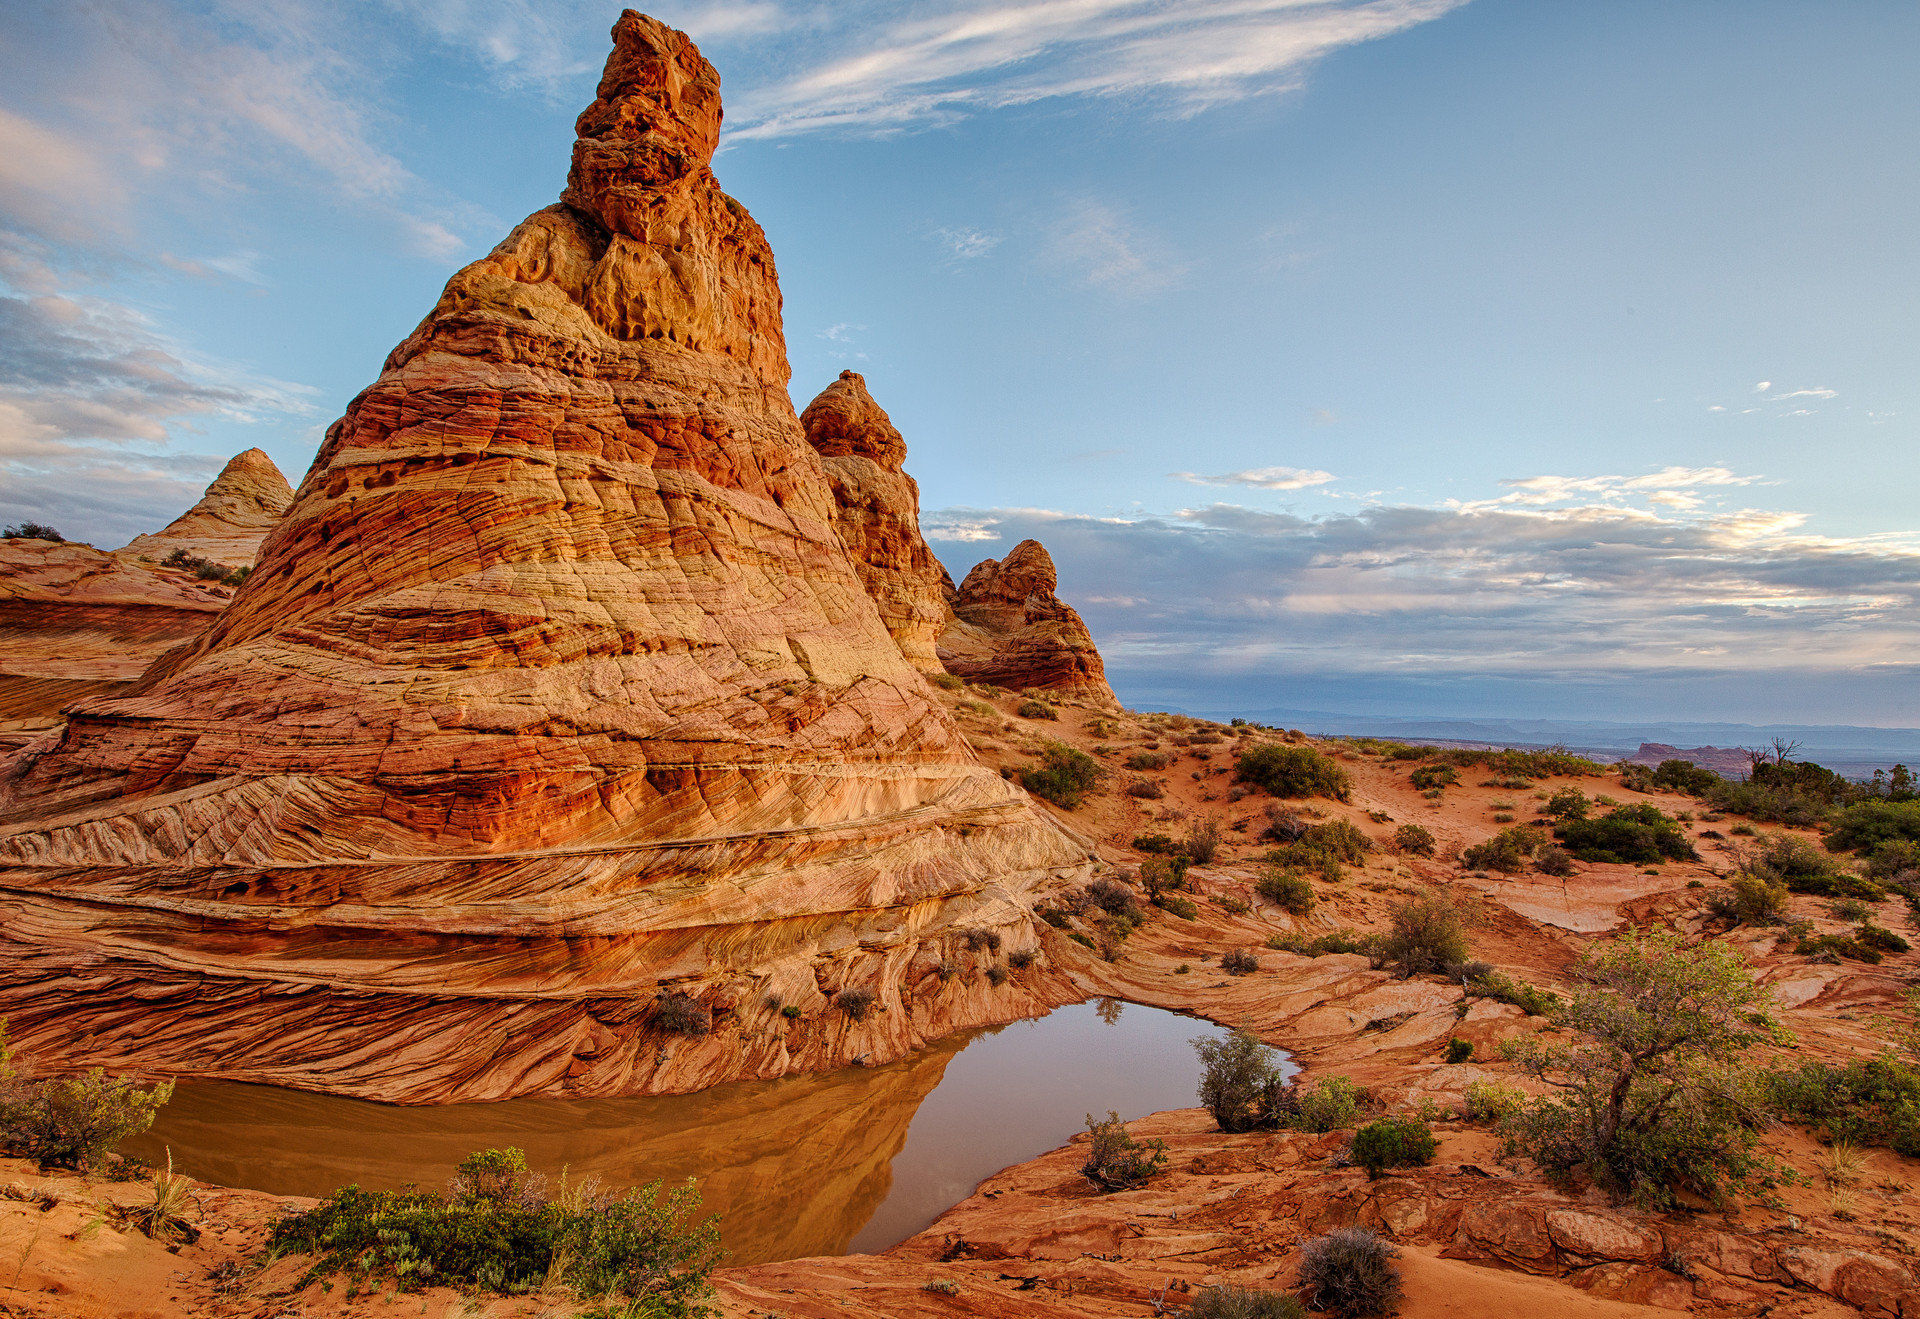 National Parks Outdoors + Adventure Trip Ideas valley sky canyon outdoor Nature mountain mountainous landforms butte geographical feature landform wilderness rock natural environment ecosystem badlands wadi arch landscape geology plateau rocky formation Desert national park terrain park material hillside